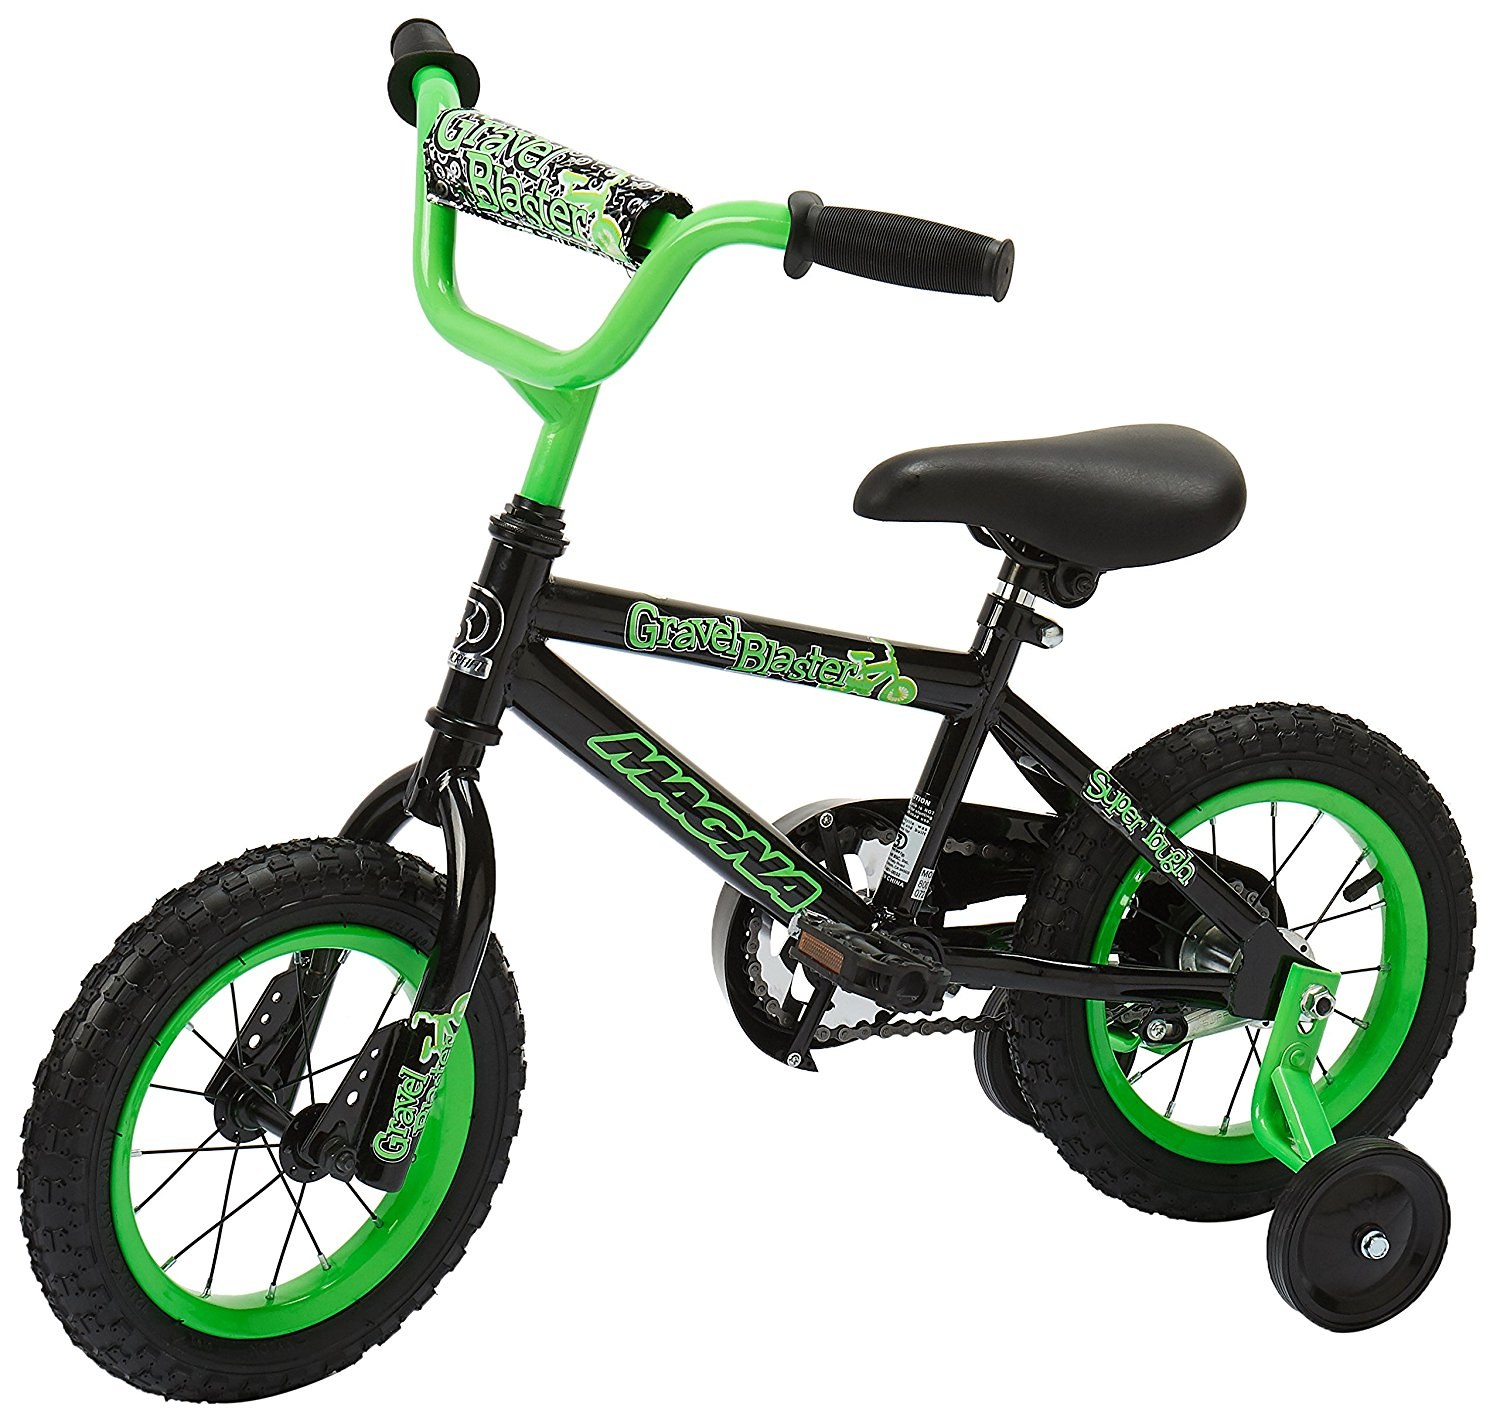 Review of Dynacraft Magna Gravel Blaster Boys BMX Street/Dirt Bike 12